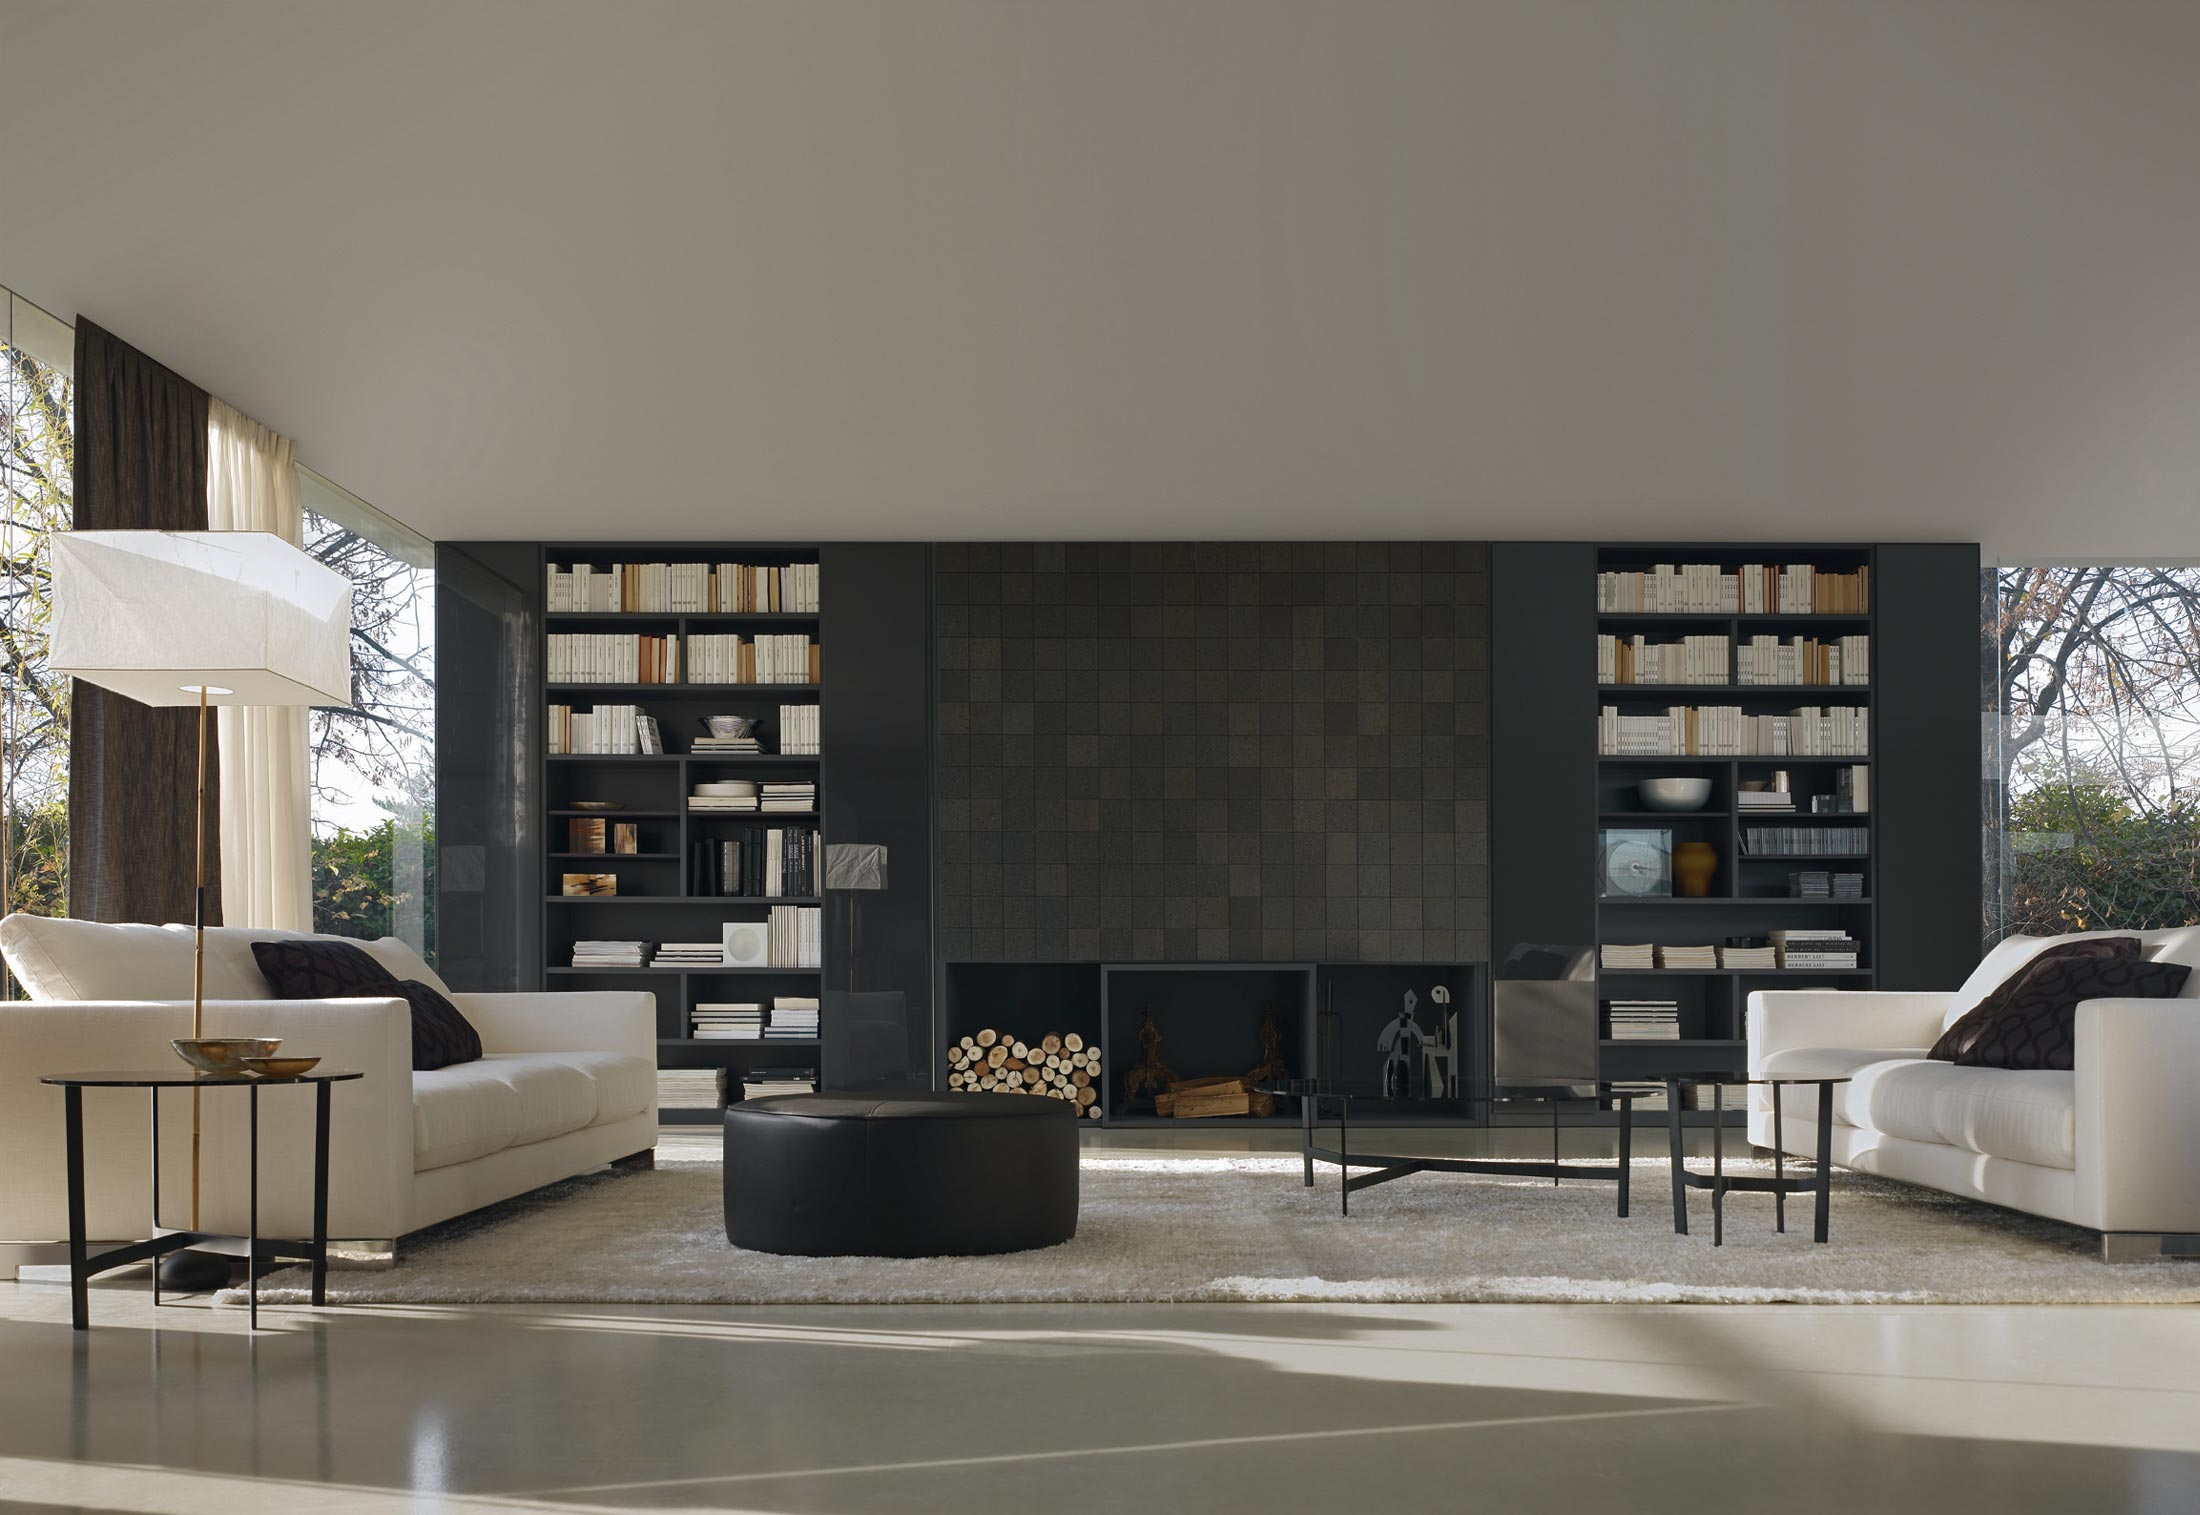 505 di molteni c pareti e librerie arredamento. Black Bedroom Furniture Sets. Home Design Ideas